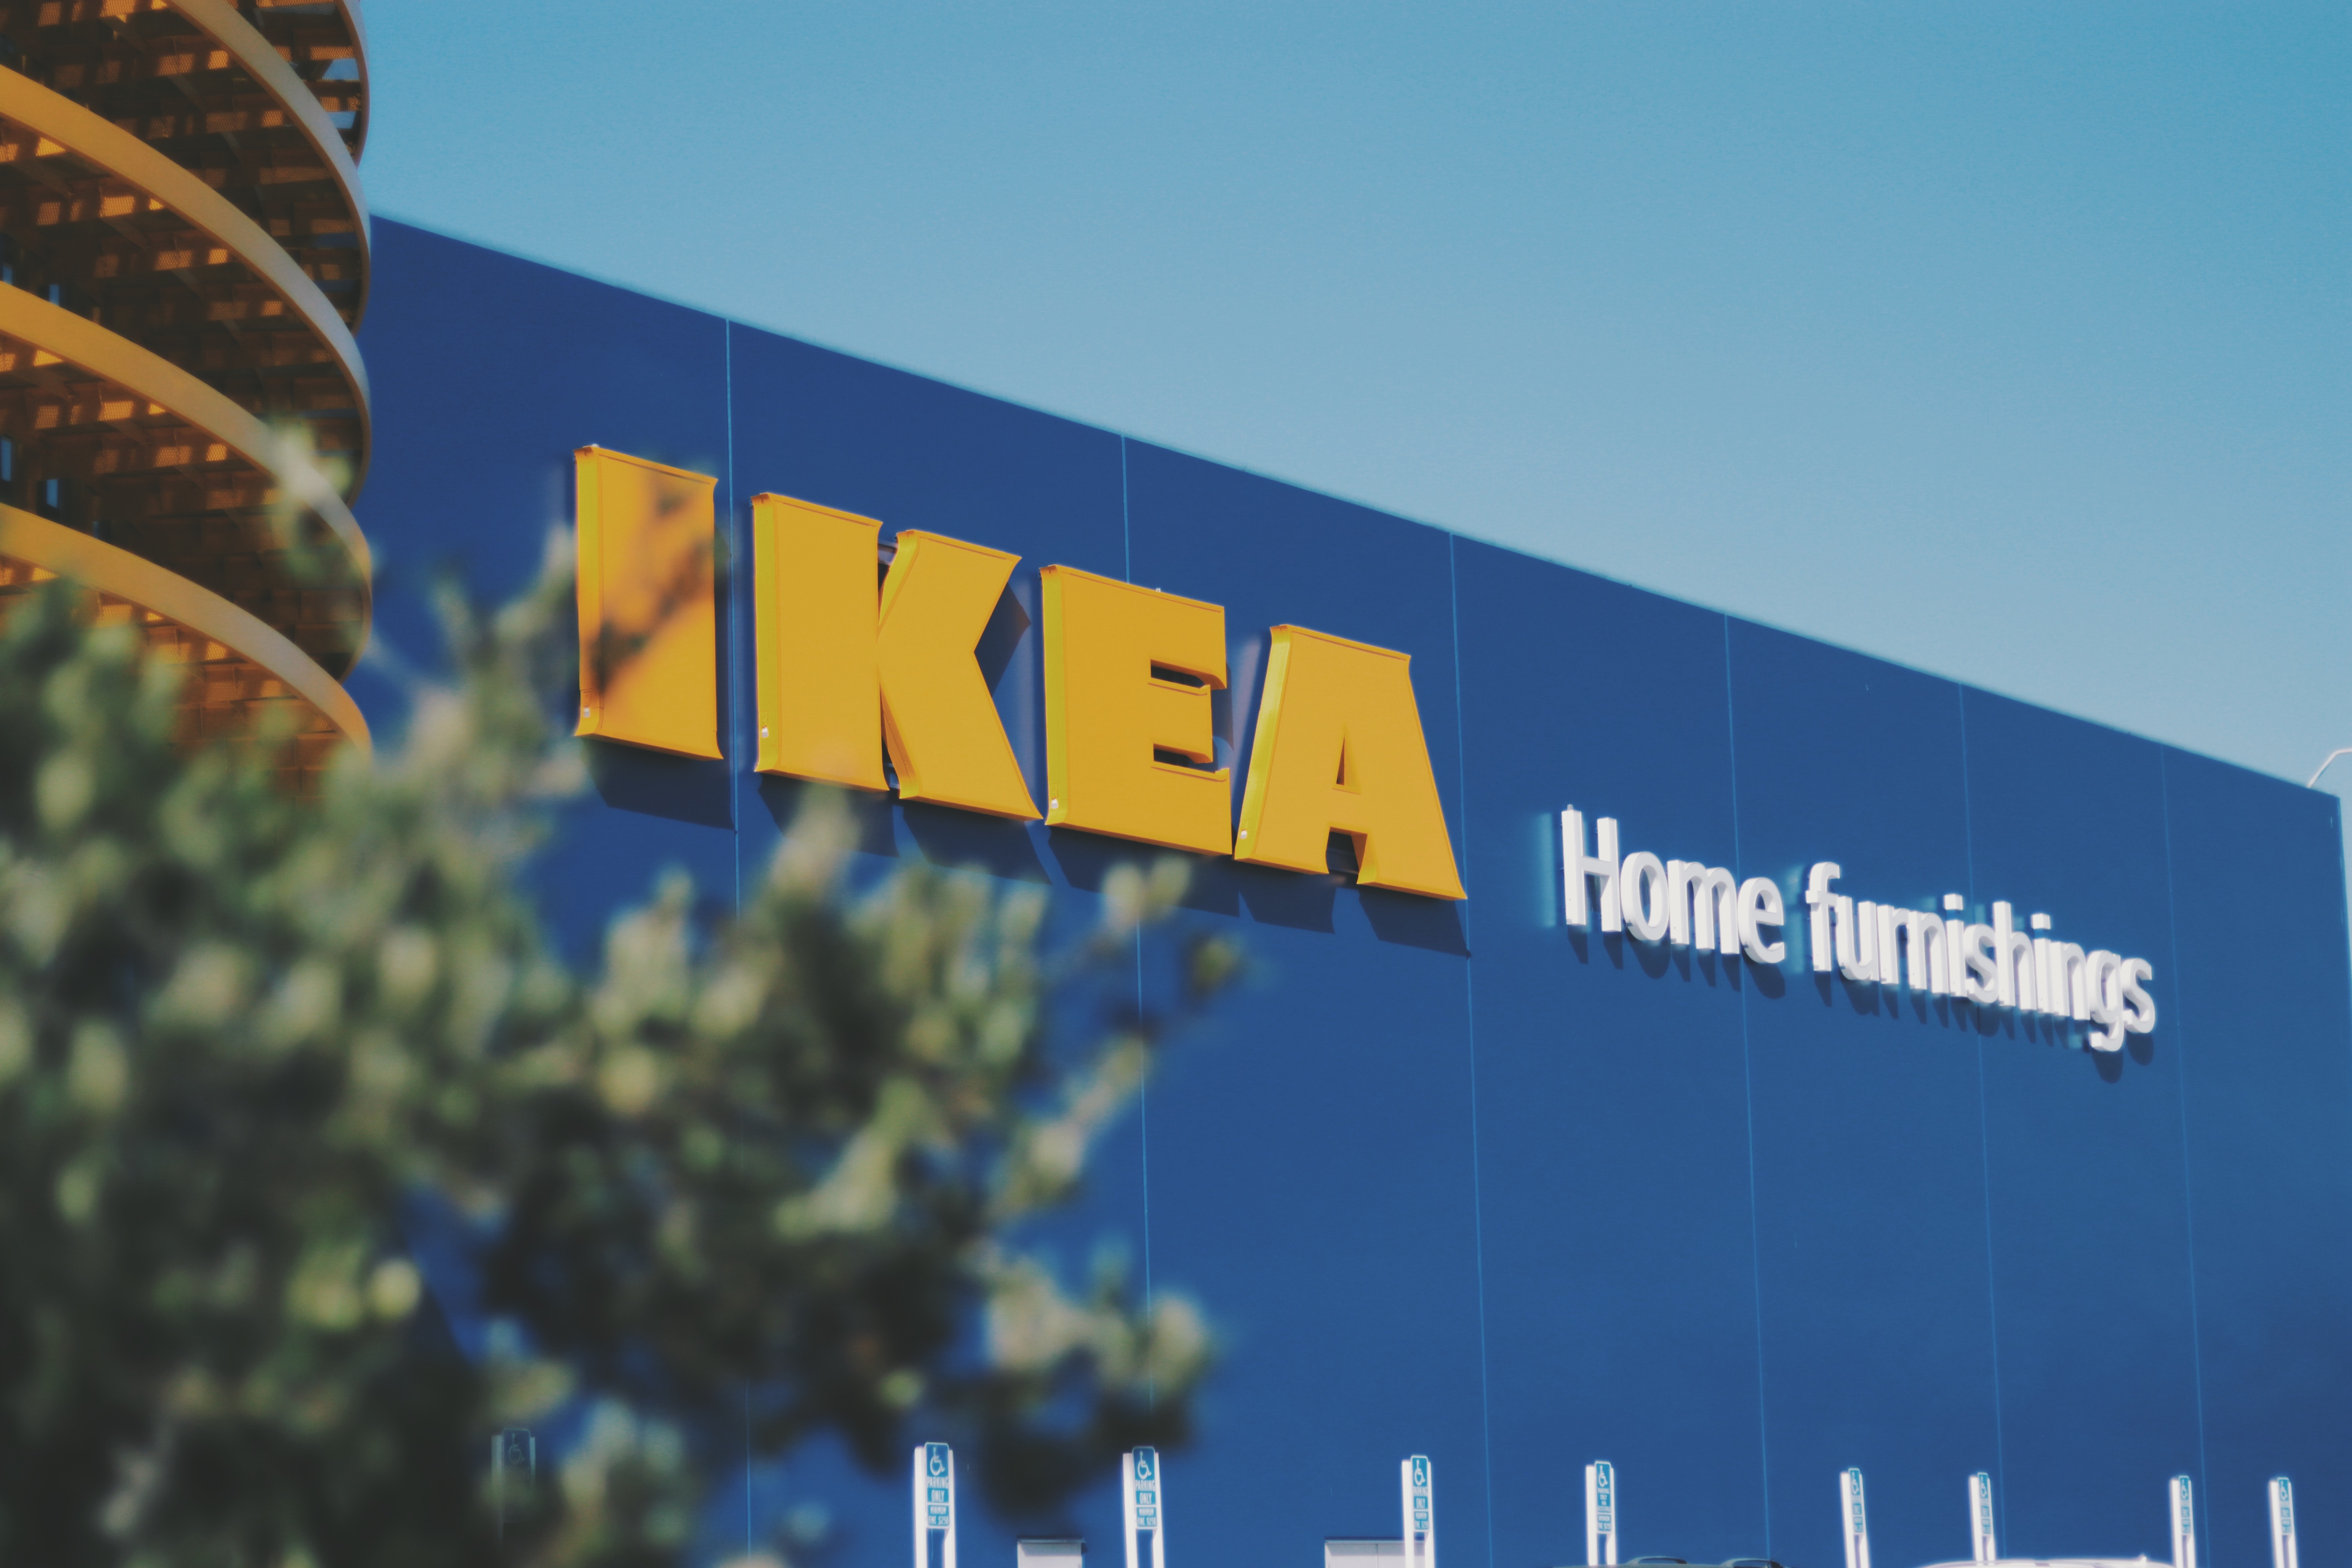 Planning A Trip To IKEA? Here's How To Make It Through The Day Without Blowing Your Budget